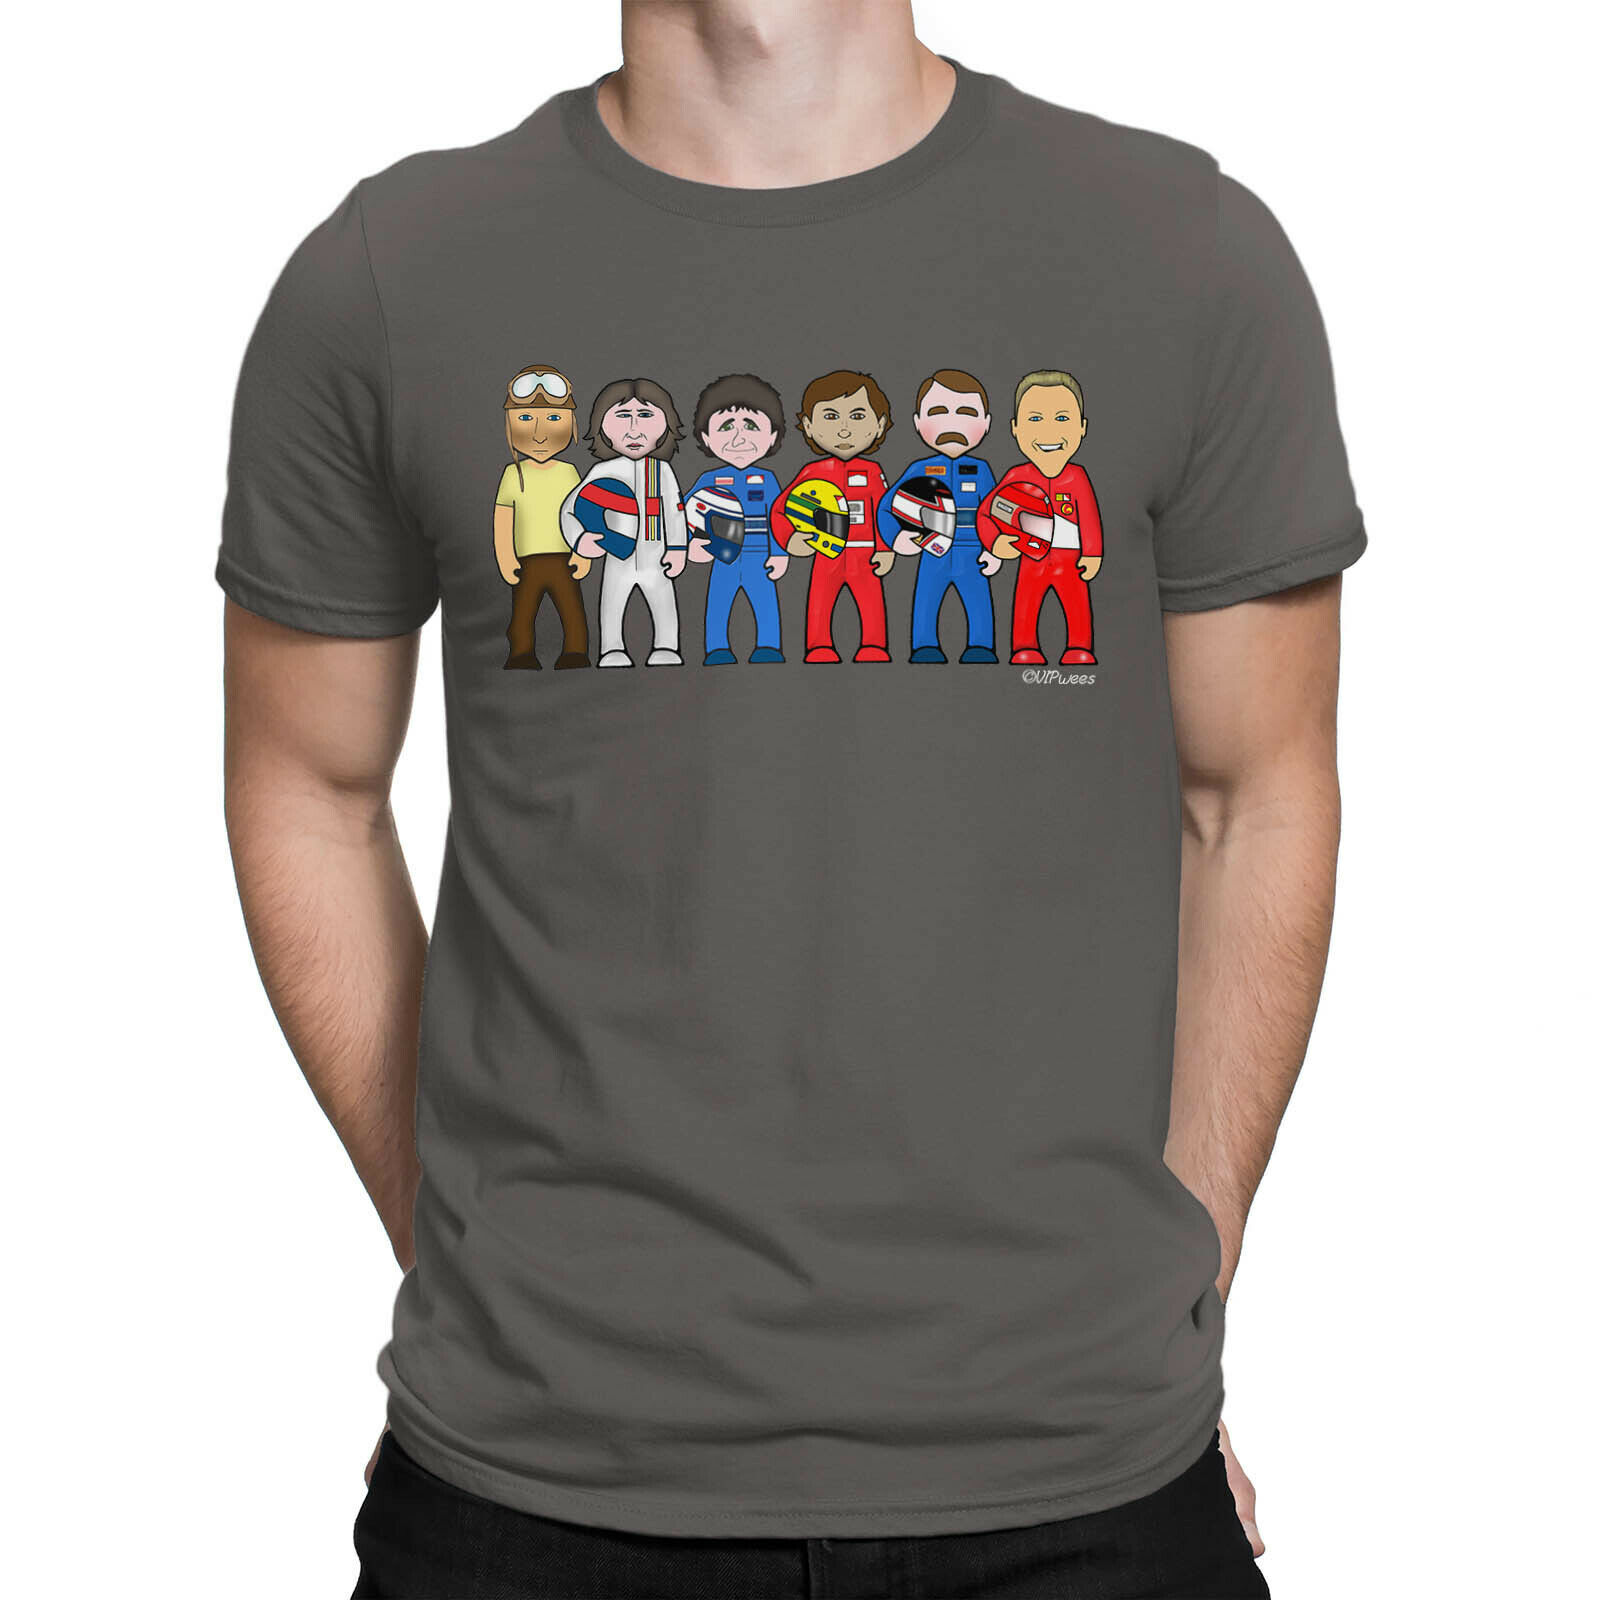 Mens Vipwees T-Shirt Formula 1 Legends F1 Motorsport Racing Caricature Gift Top Unisex Racing Tee Size S-3Xl